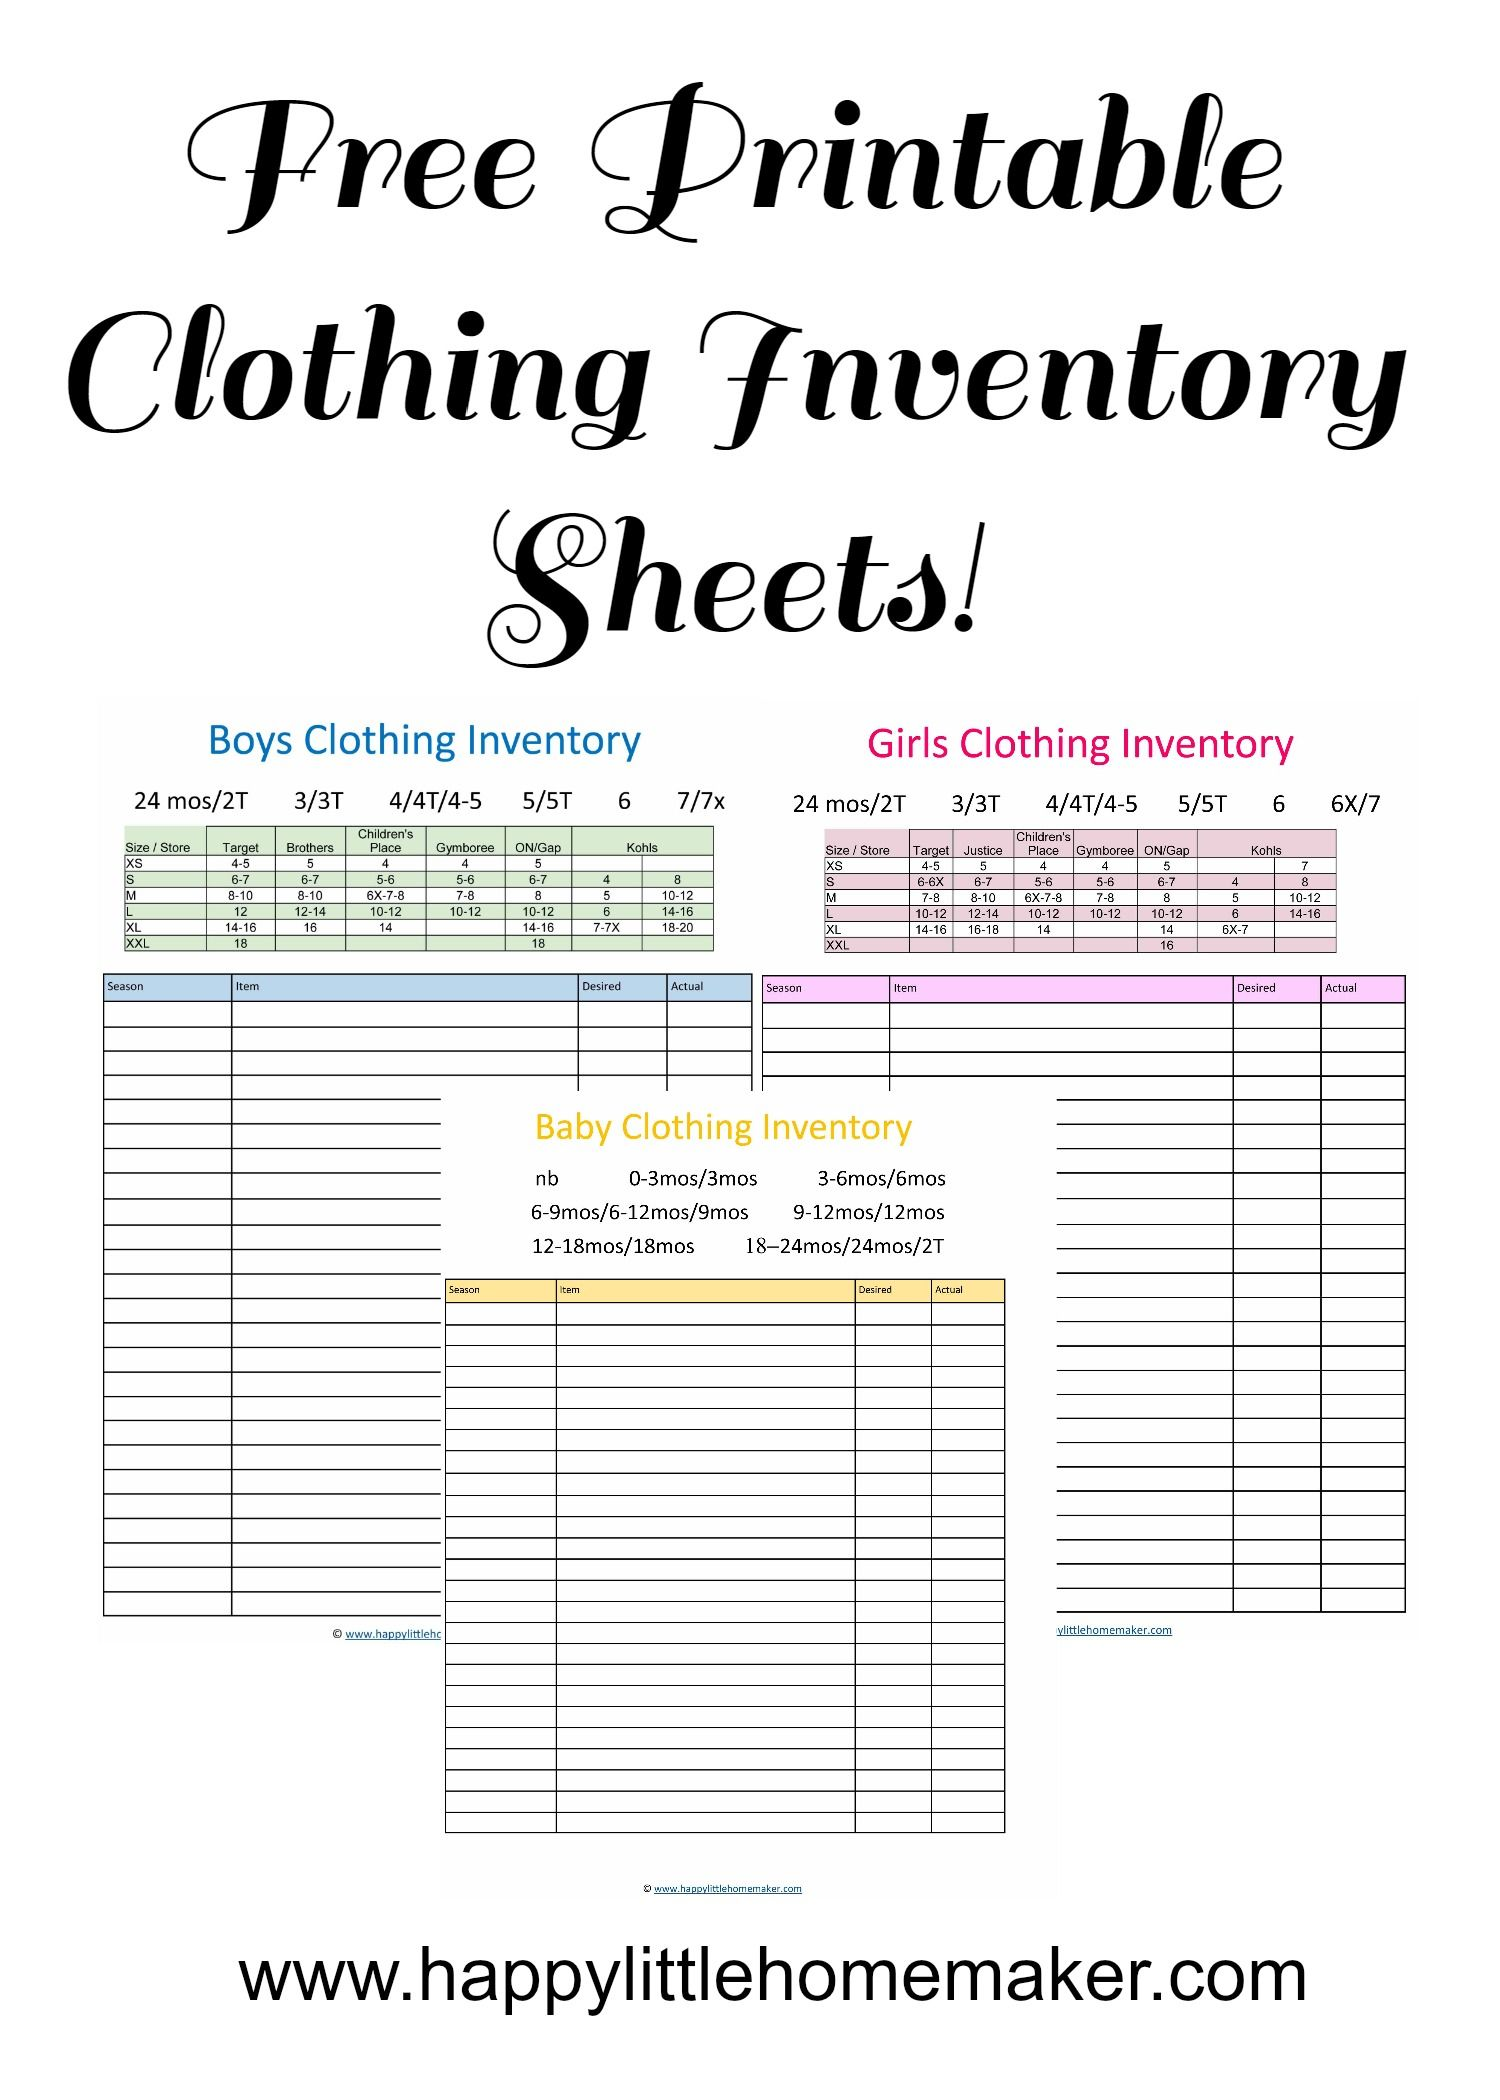 Free Printable Clothing Inventory Sheets